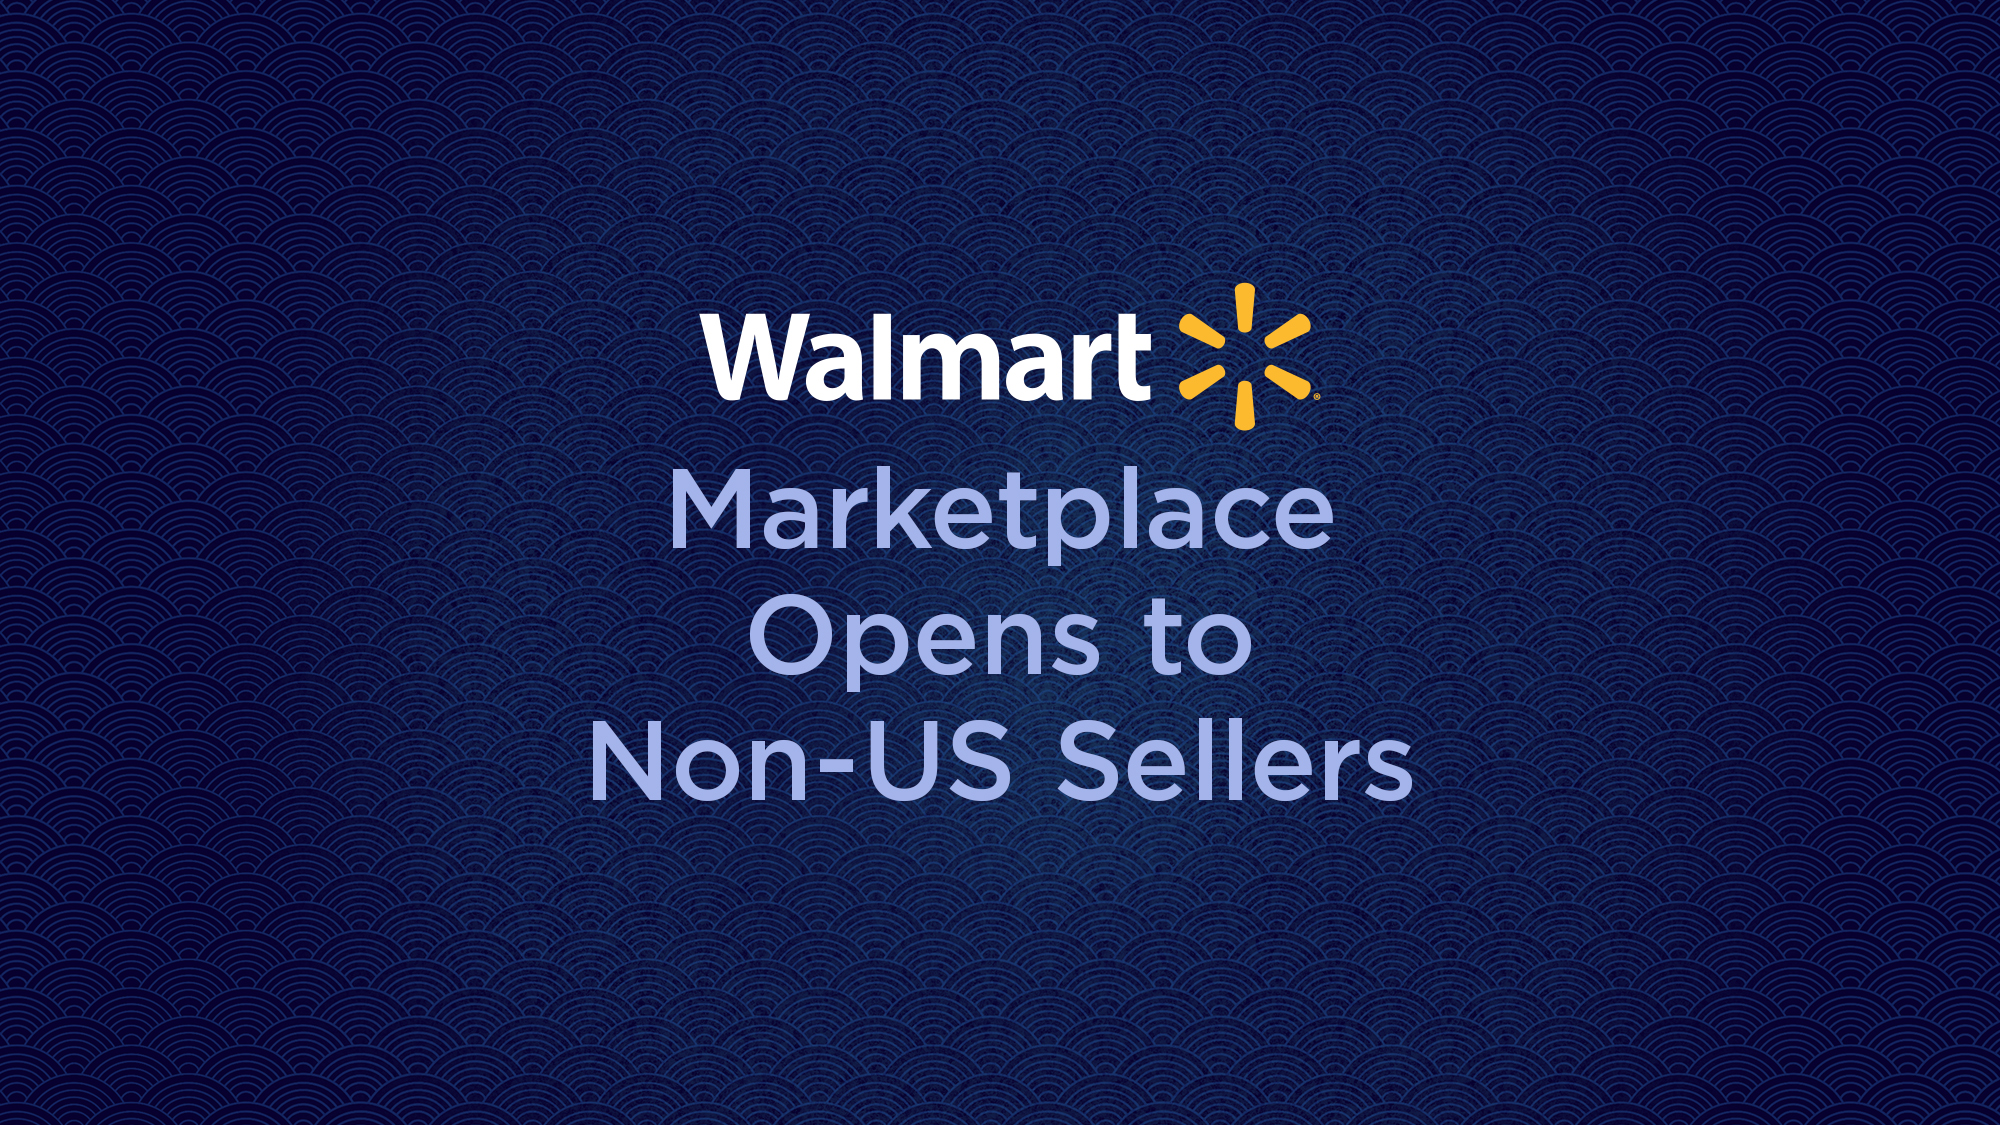 Walmart Now Allowing Non-US Sellers to Sell on Walmart.com